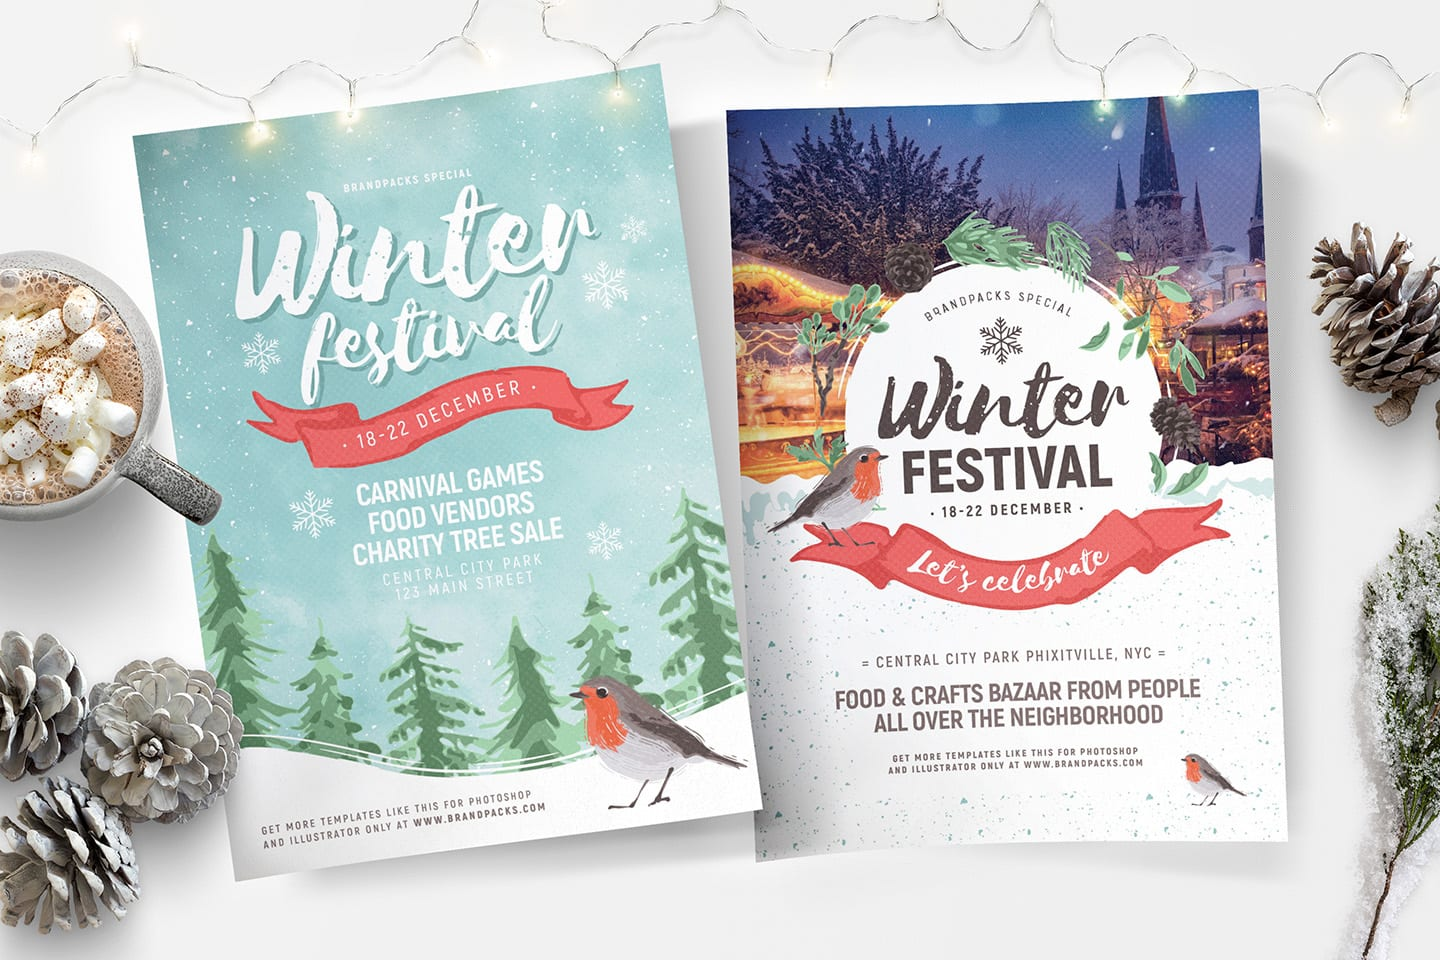 Winter Festival Posters for Photoshop & Illustrator